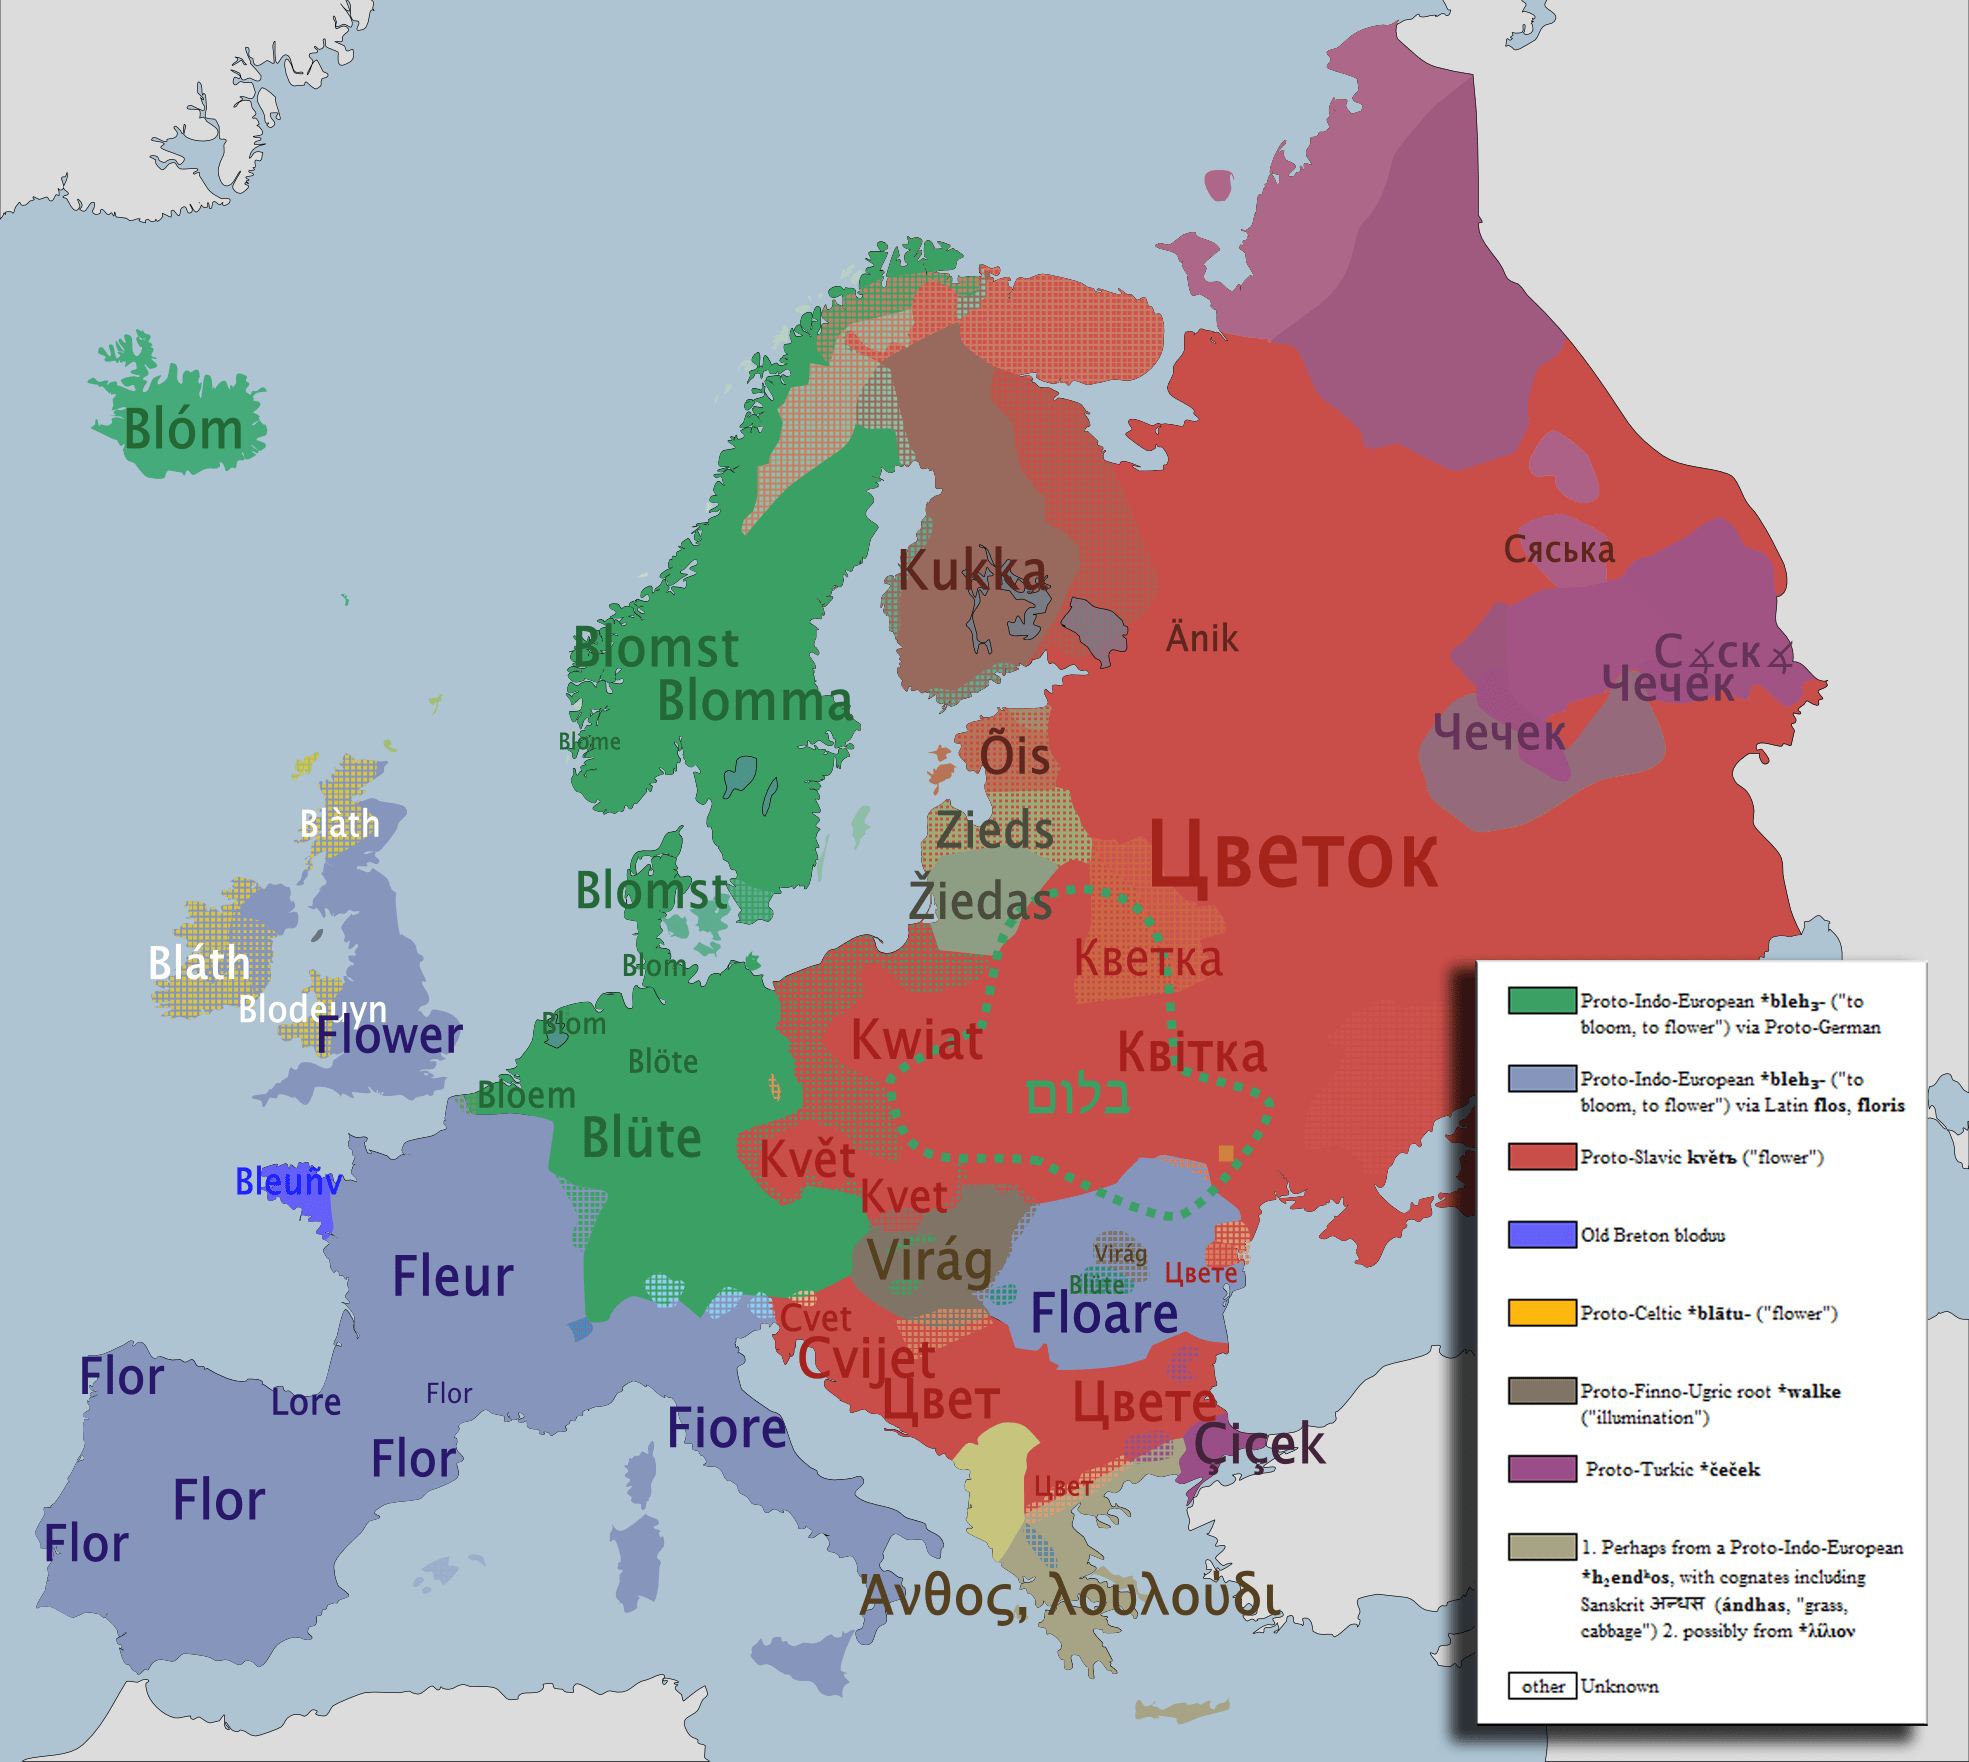 Charming The Word For Flower In Various European Languages. Source: Link